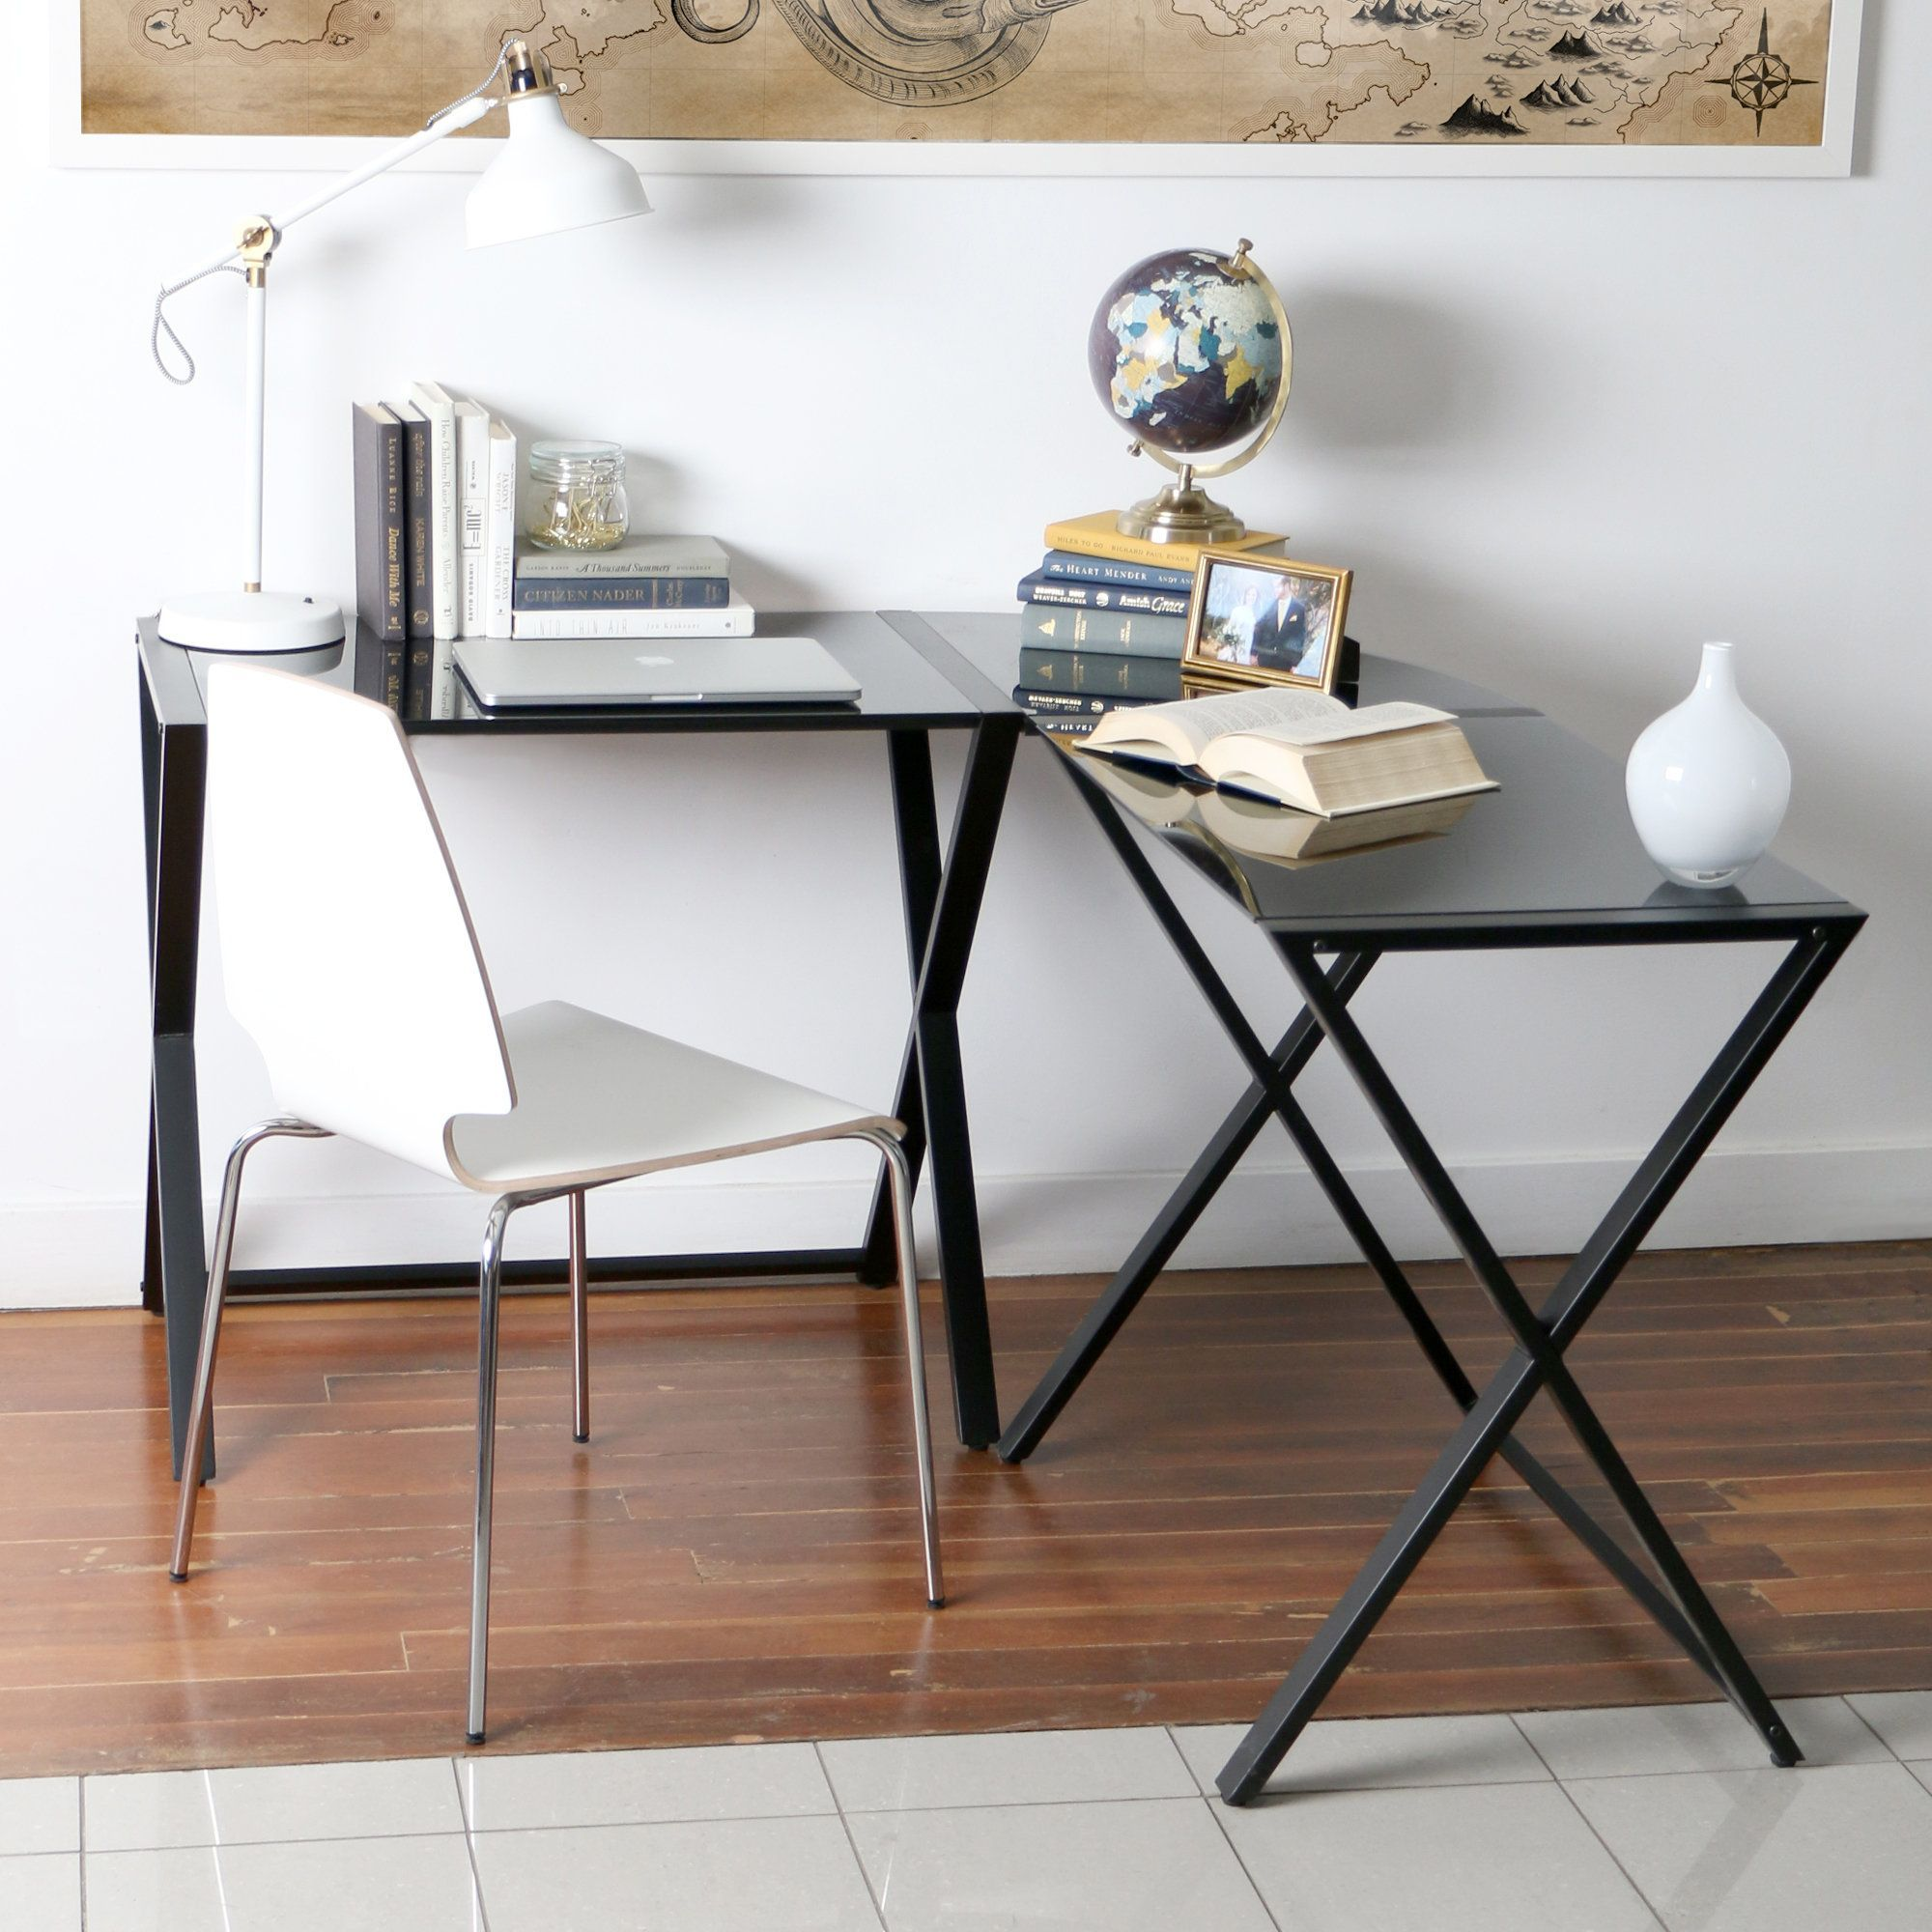 Diy Computer Desk L Shapes Ideas For Writers And Researchers